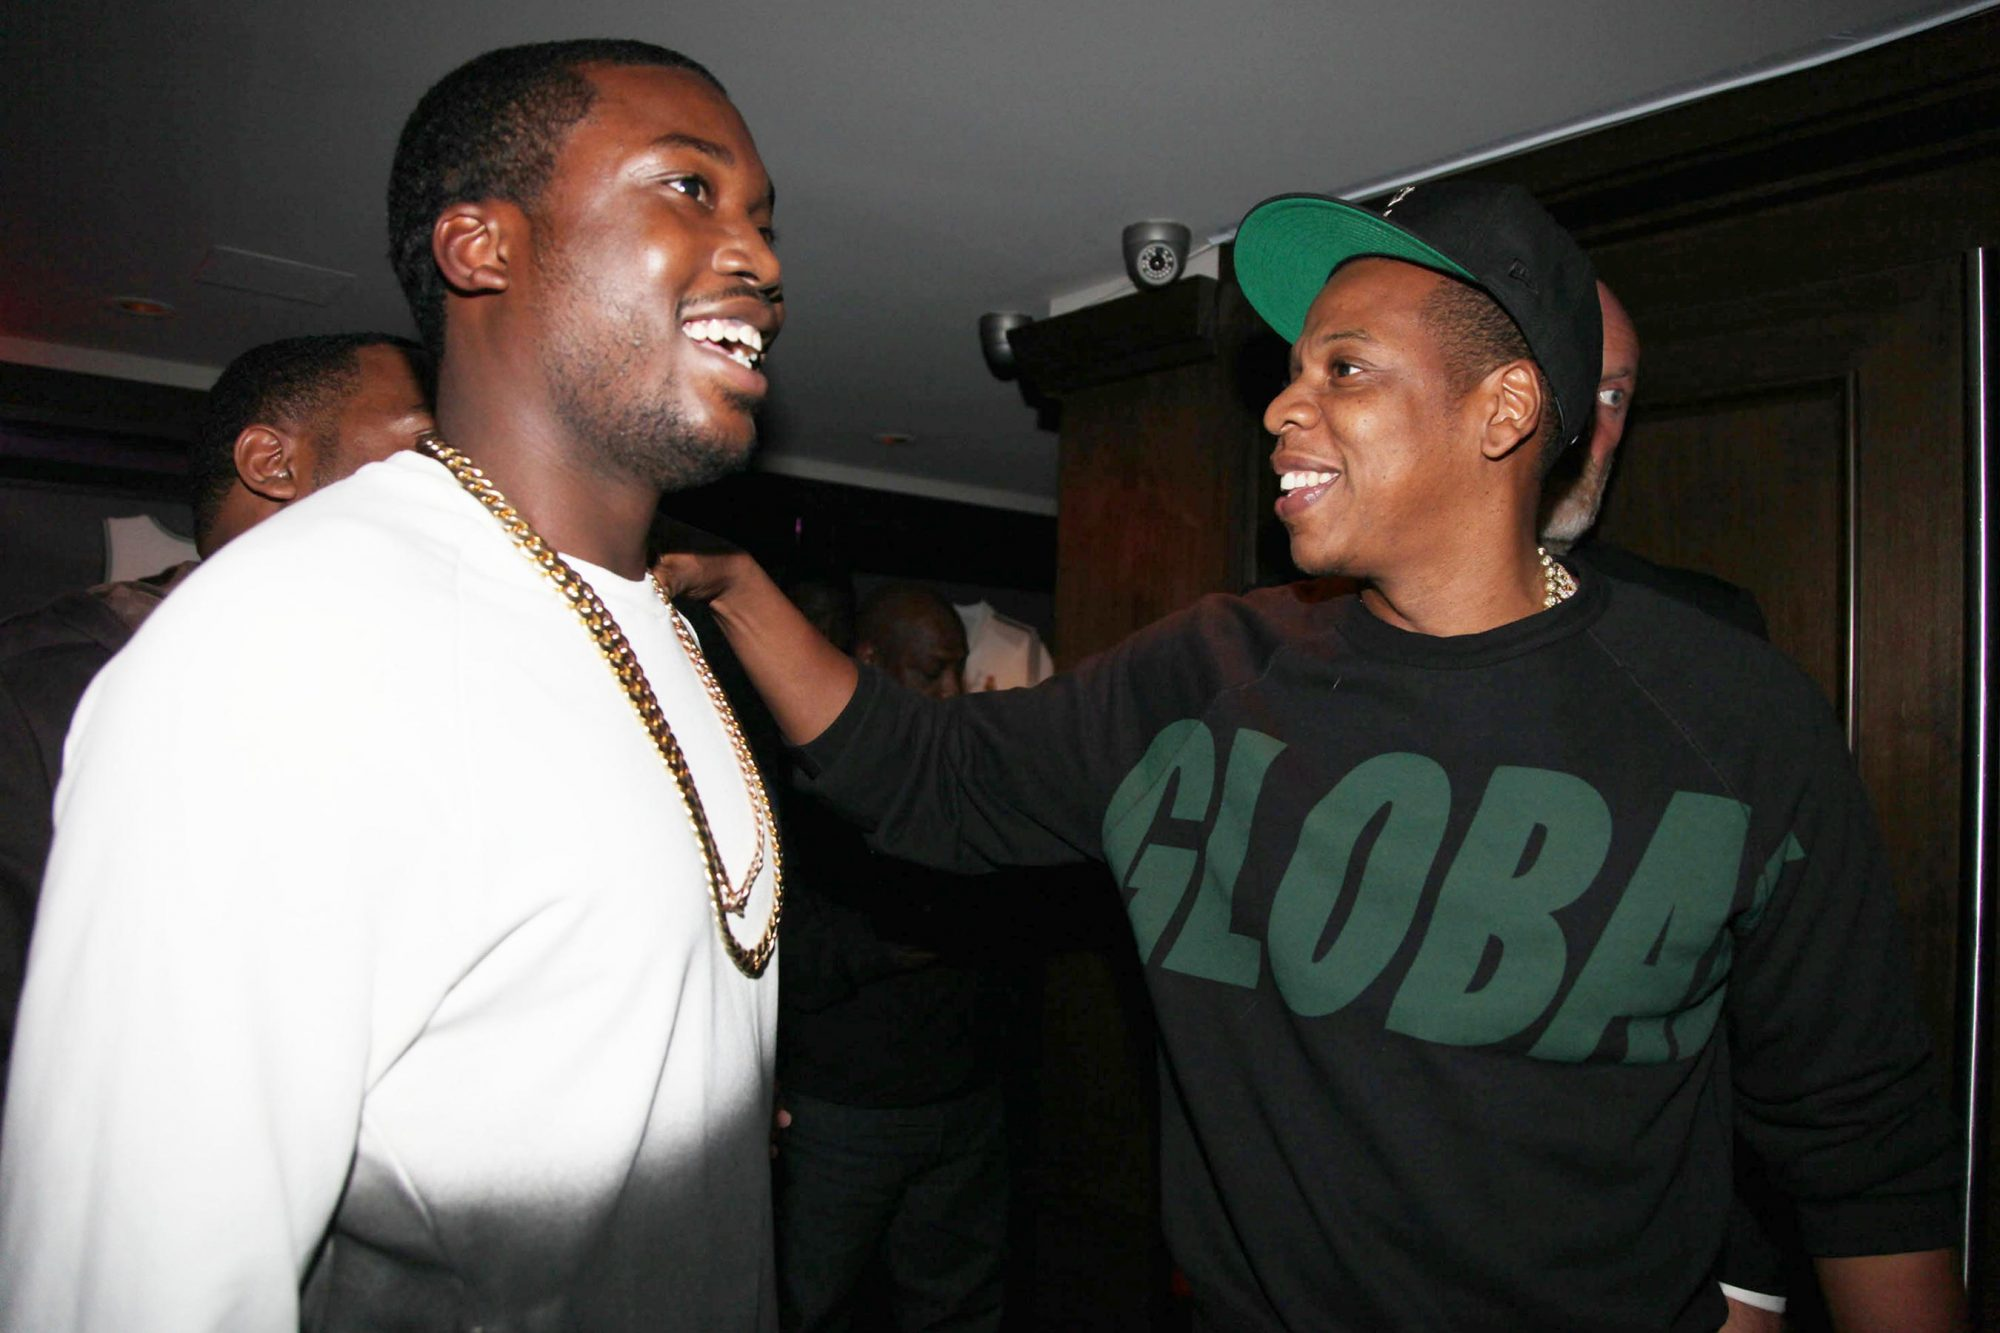 Meek Mill and Jay-Z in 2012